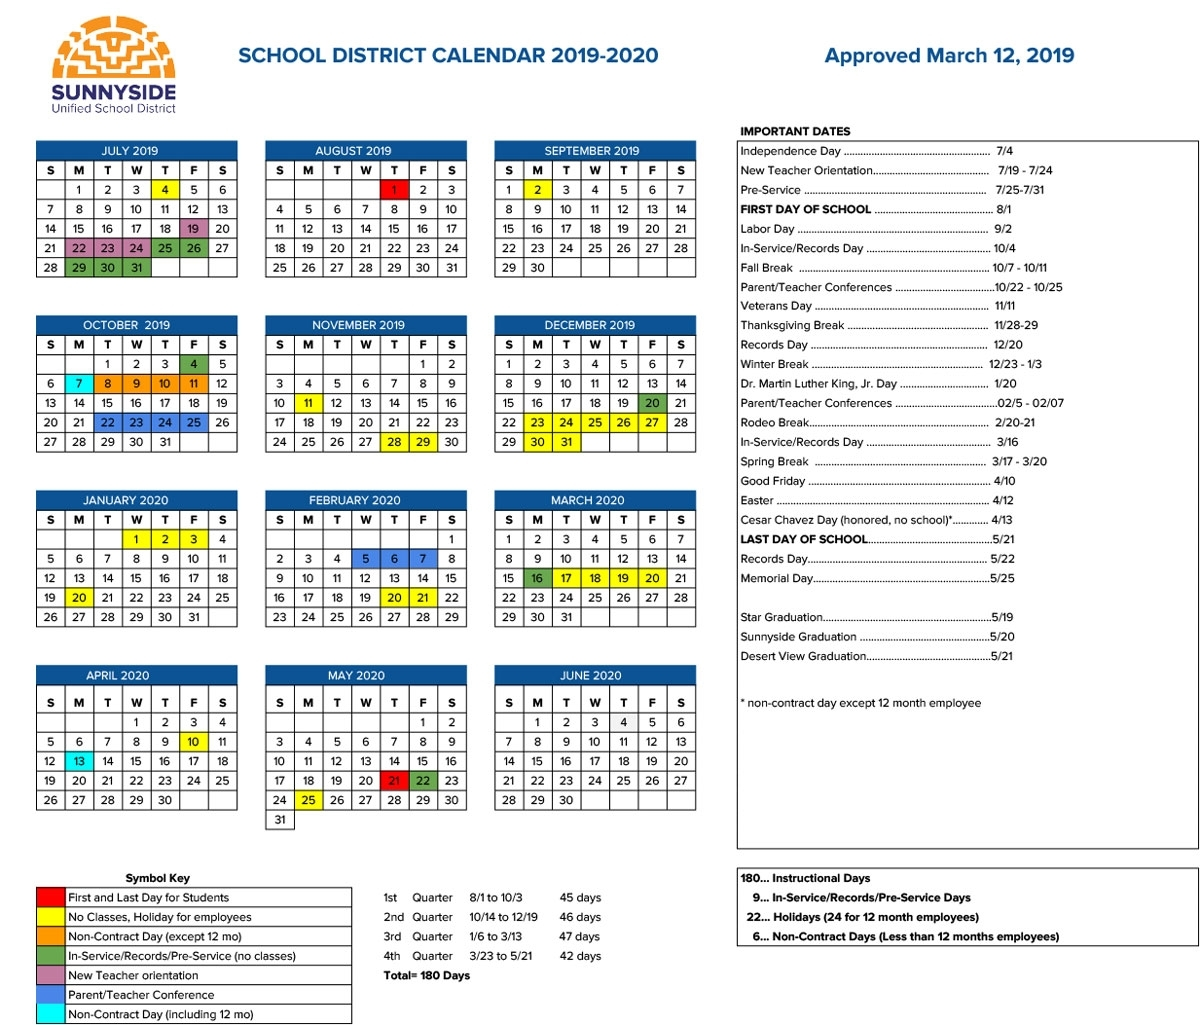 Academic Calendar   Sunnyside Unified School District intended for Special Days In The School Year 2019-2020